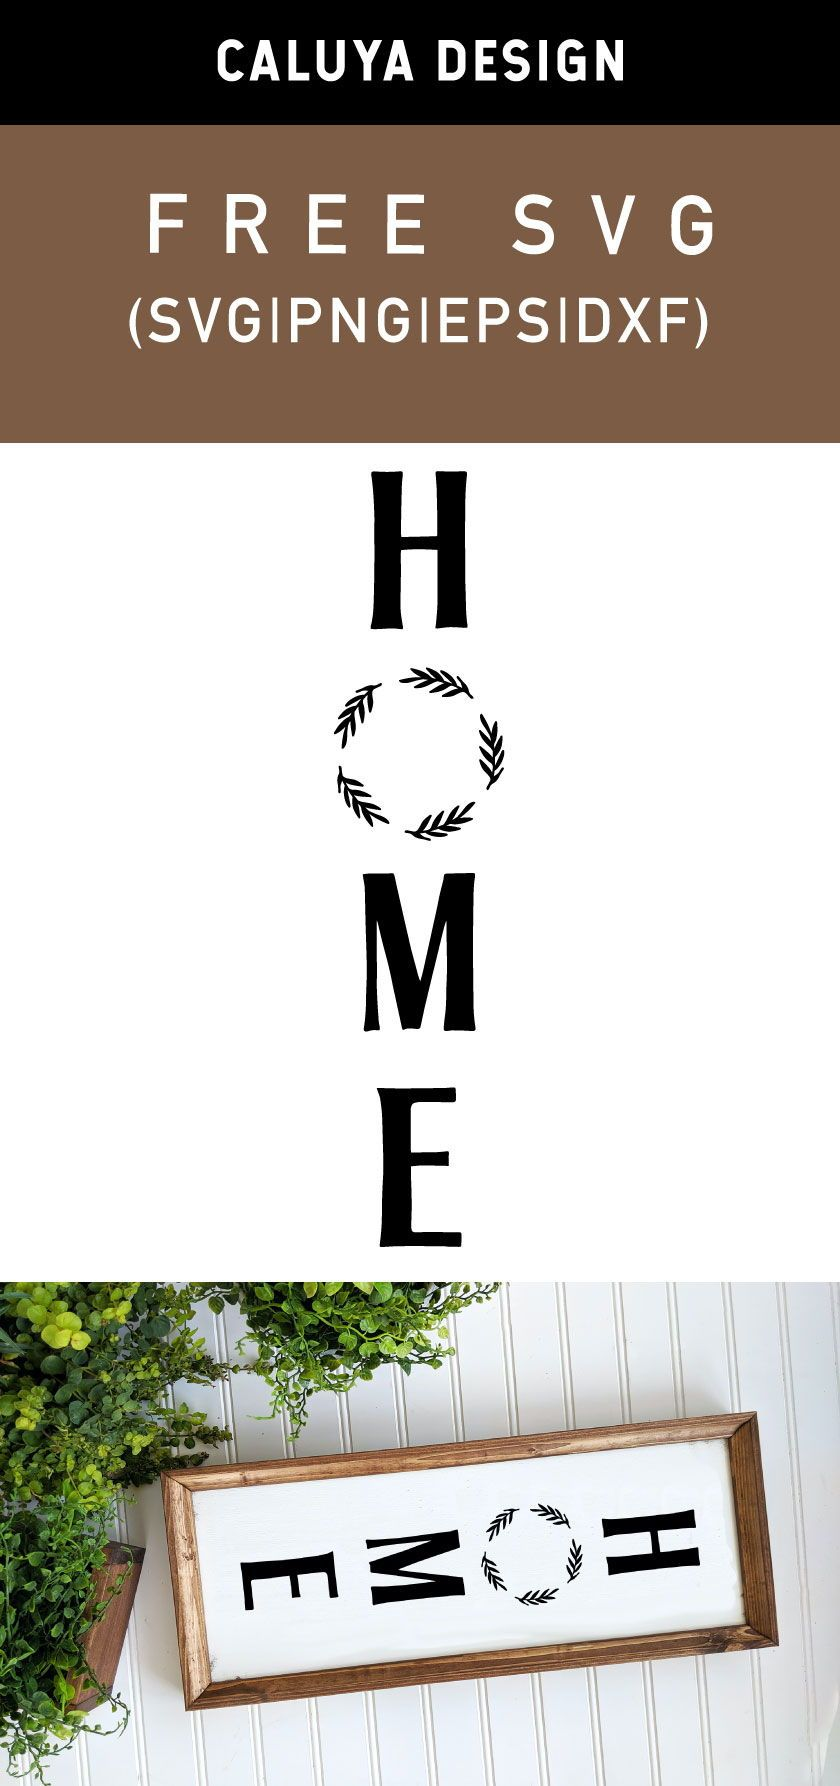 Free Home Vertical Sign SVG, PNG, EPS & DXF by Caluya Design